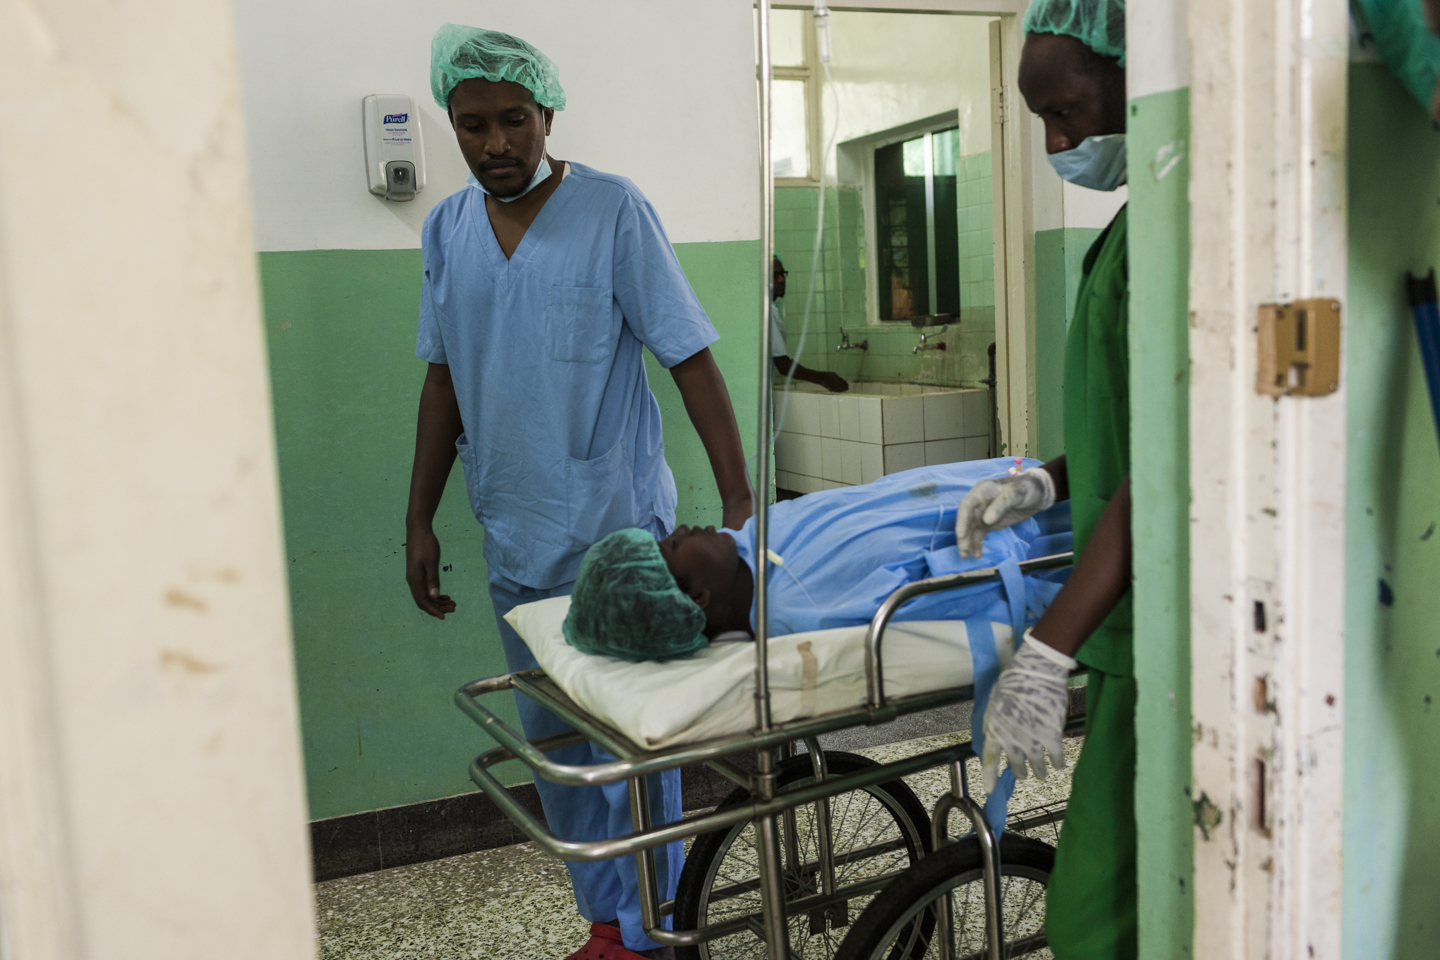 Howa Oofay Moalim, is wheeled out of her surgery after being in labor for five days with her first child who was being born in shoulder presentation. Howa had an emergency Caesarian section and both mother and baby boy are recovering in the Banadir Hospital in Mogadishu, Somalia, December 2, 2014.